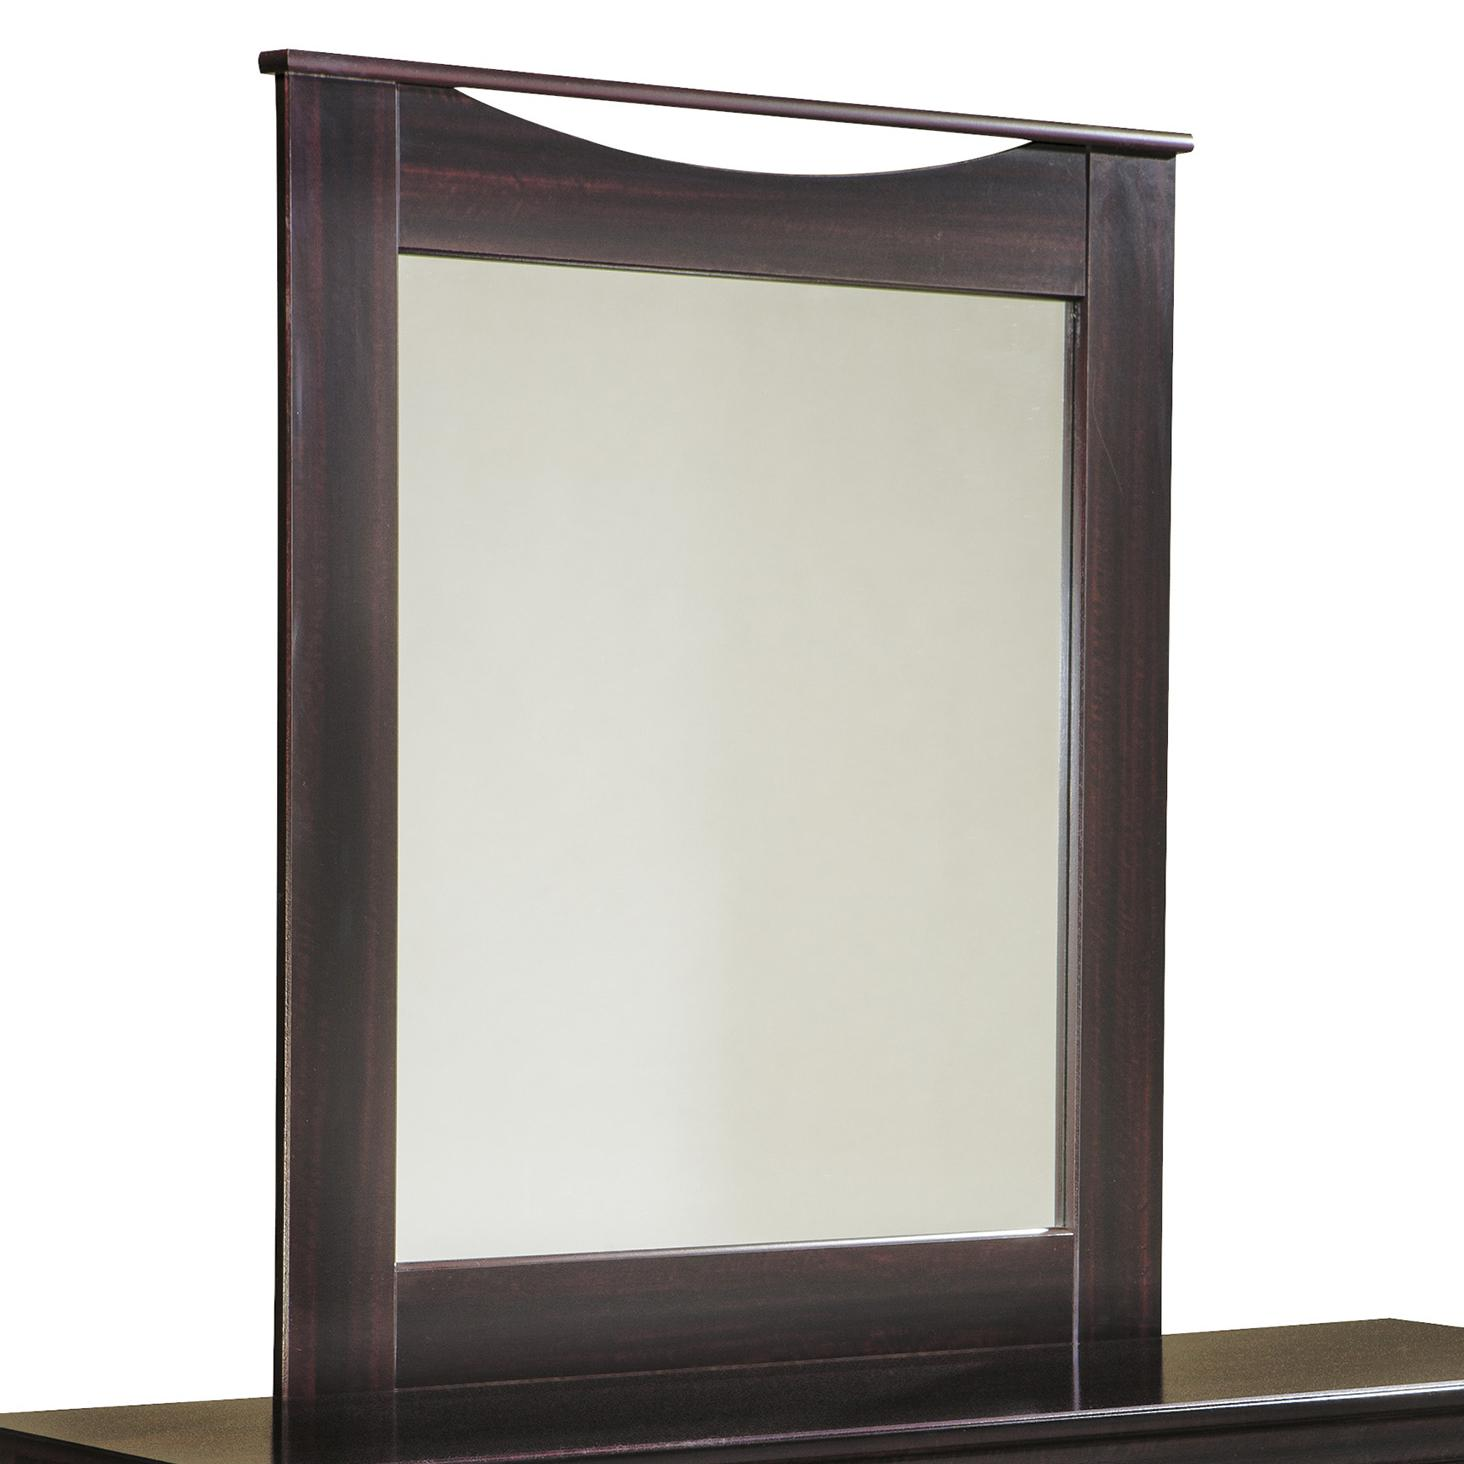 Zanbury Bedroom Mirror by Signature Design by Ashley at Reid's Furniture